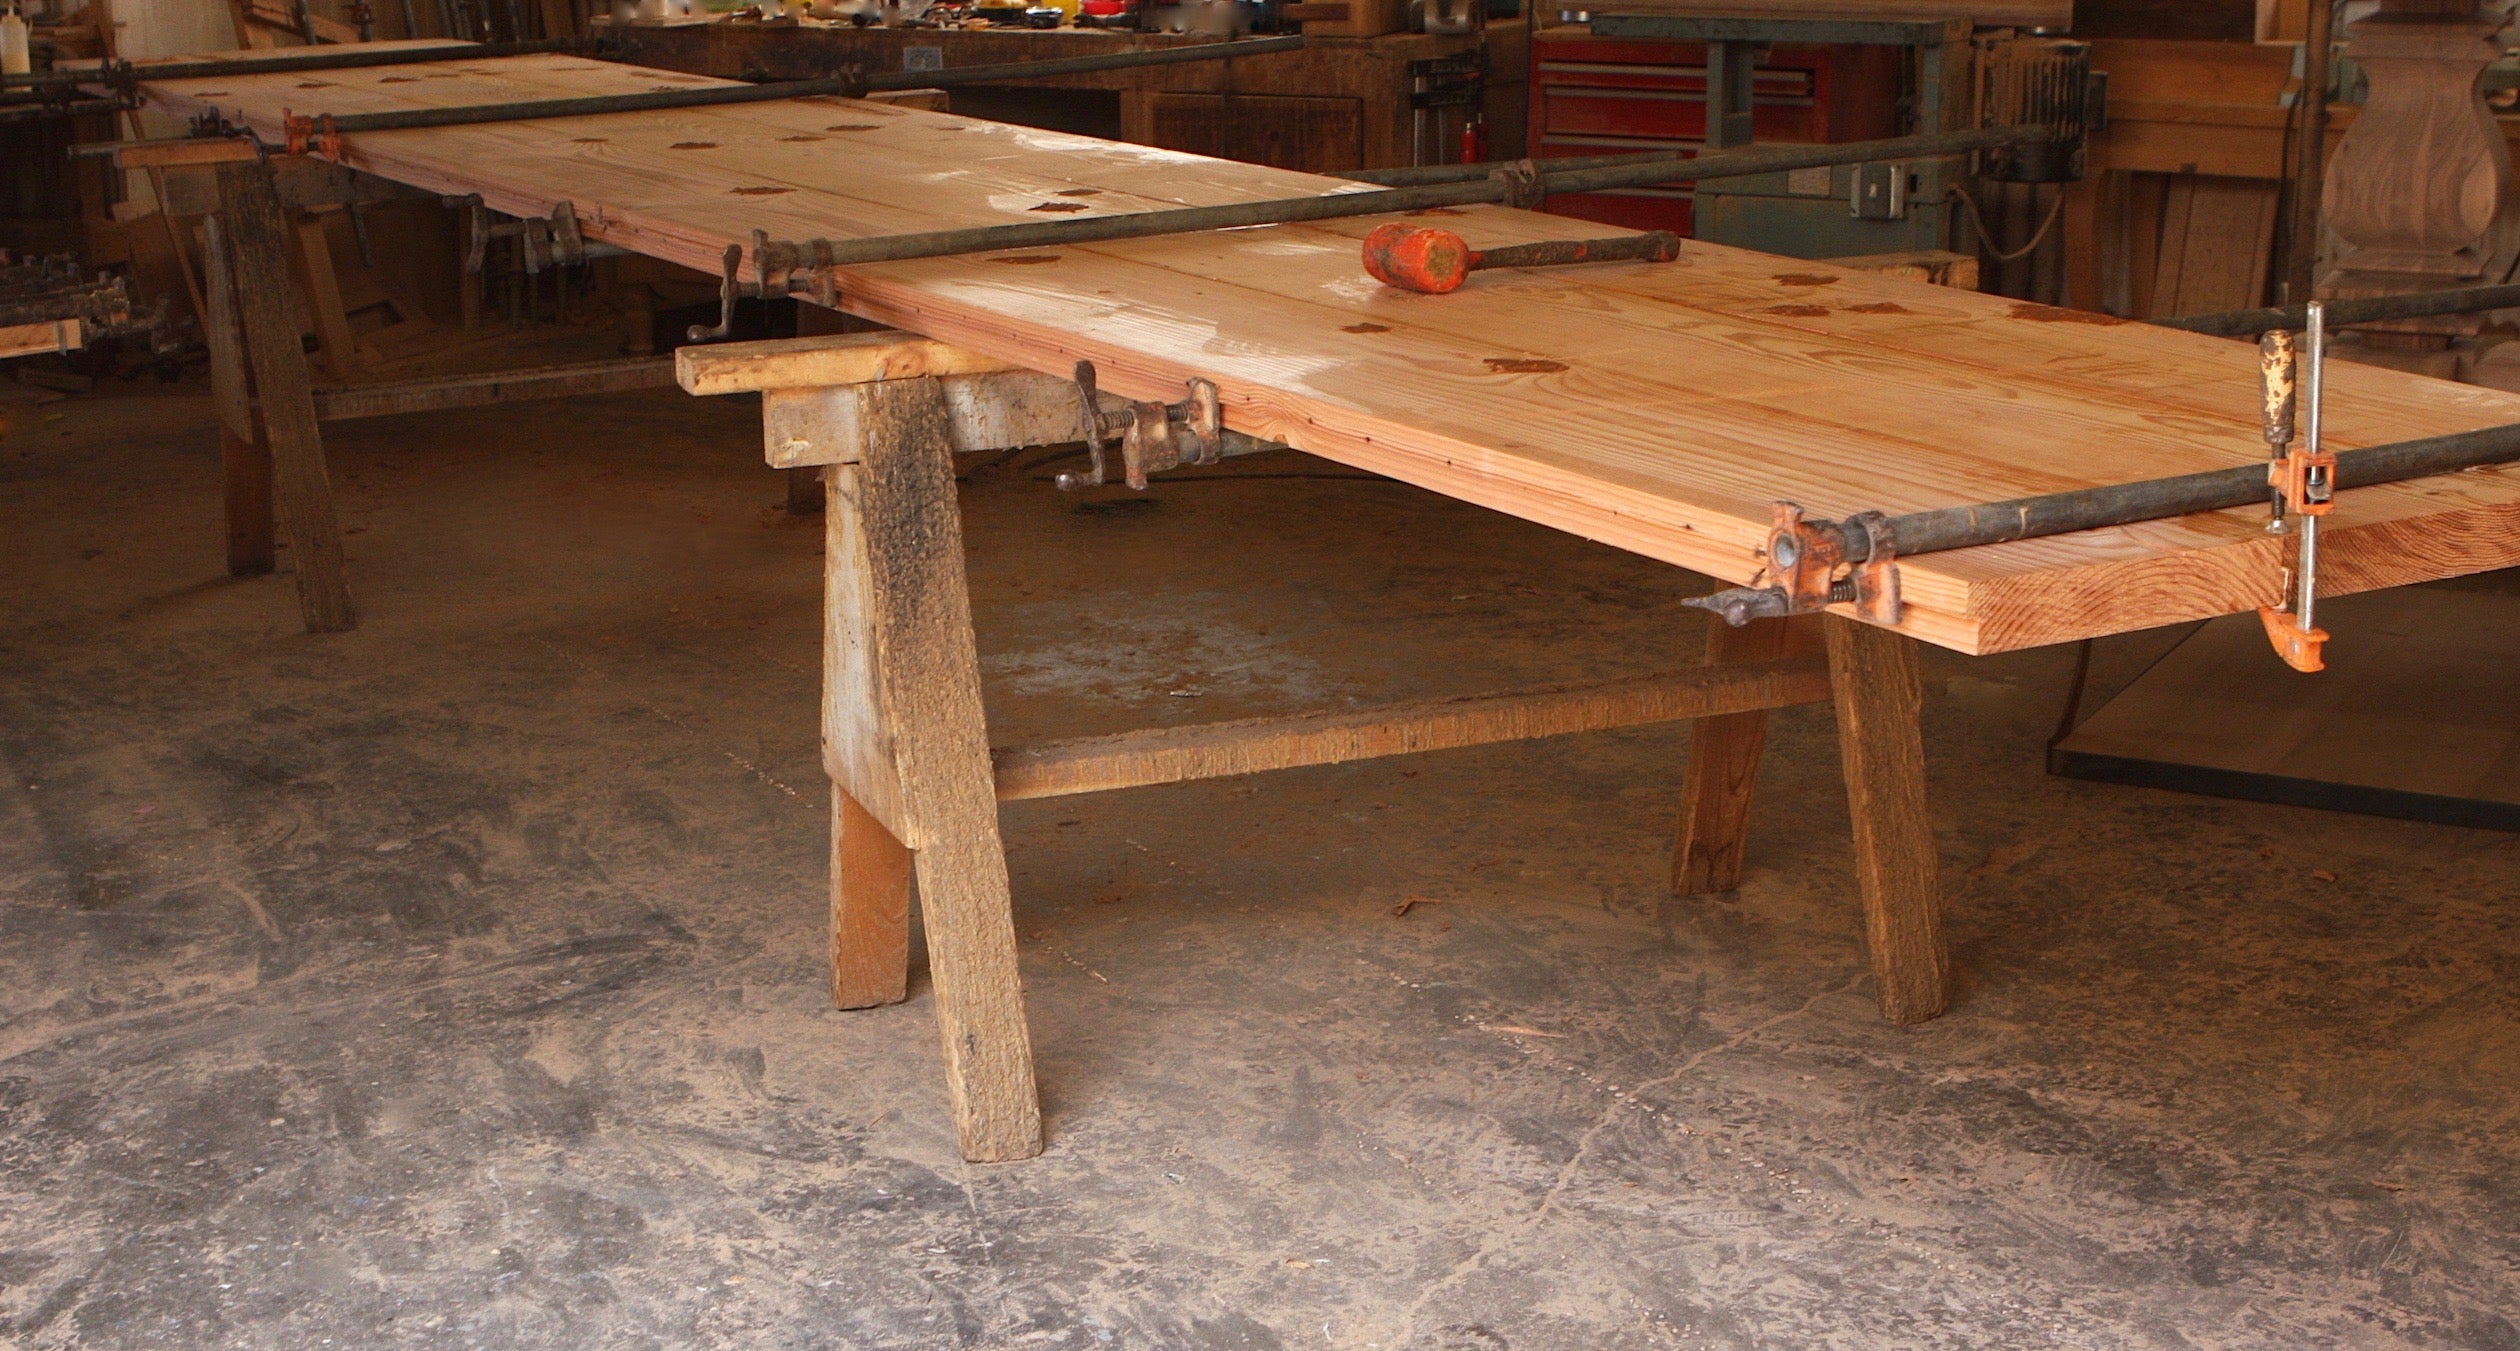 40 Ft Outdoor Dining Table With Solid Iron Base Mortise Tenon